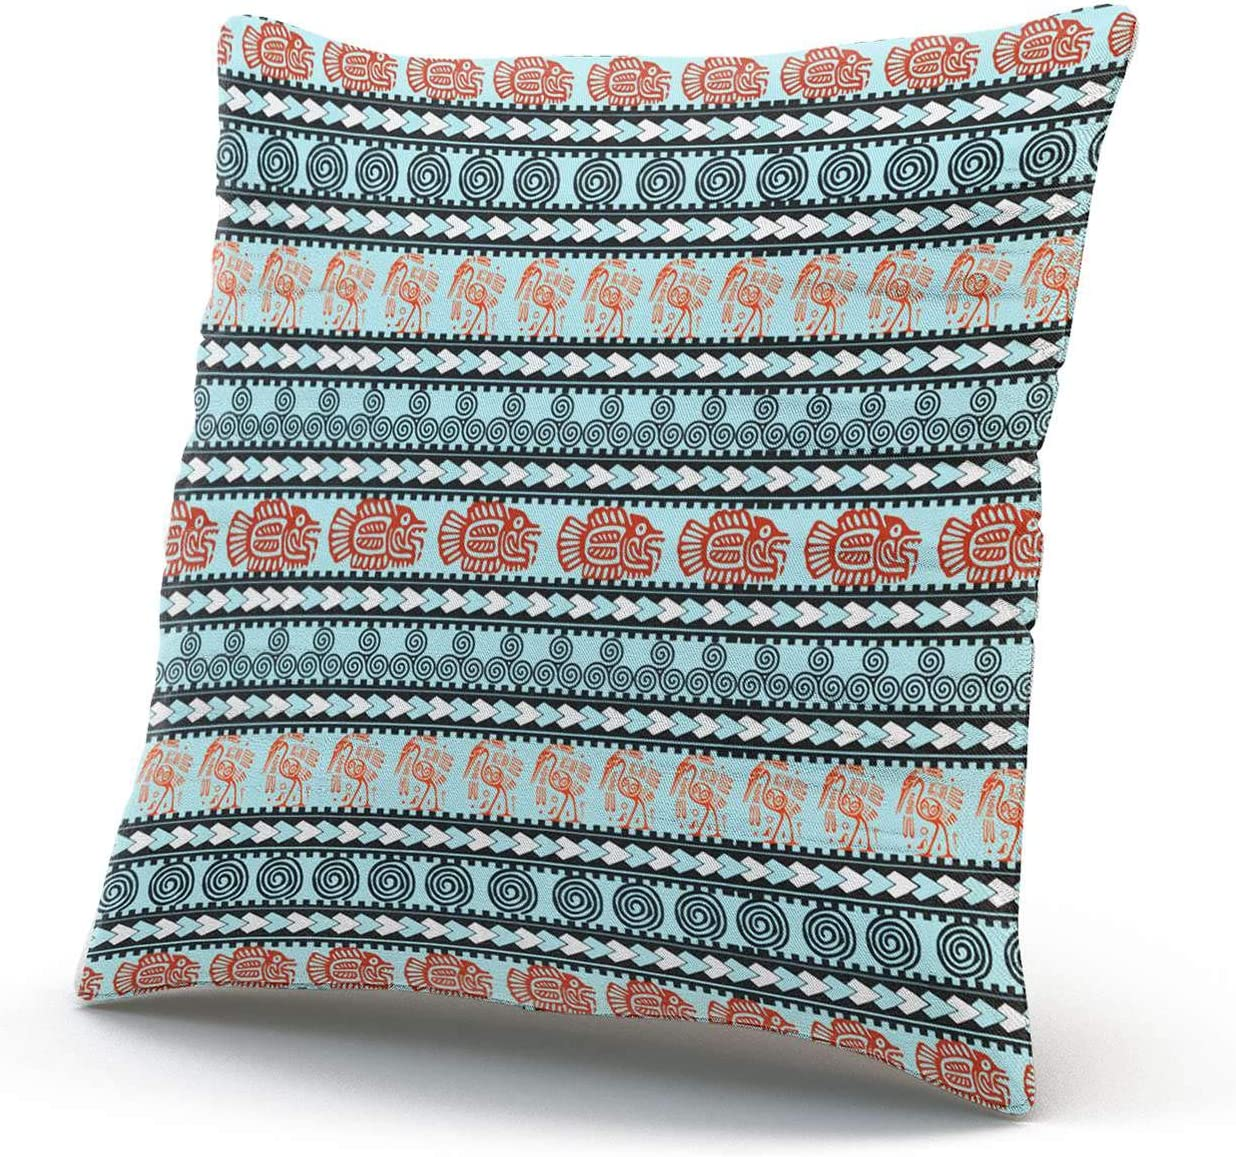 Suike Teal Red Black Mexican Tribal Aztec Beauty Hidden Zipper Home Decorative Rectangle Throw Pillow Cover Cushion Case Boudoir 12x20 Inch One Side Design Printed Pillowcase